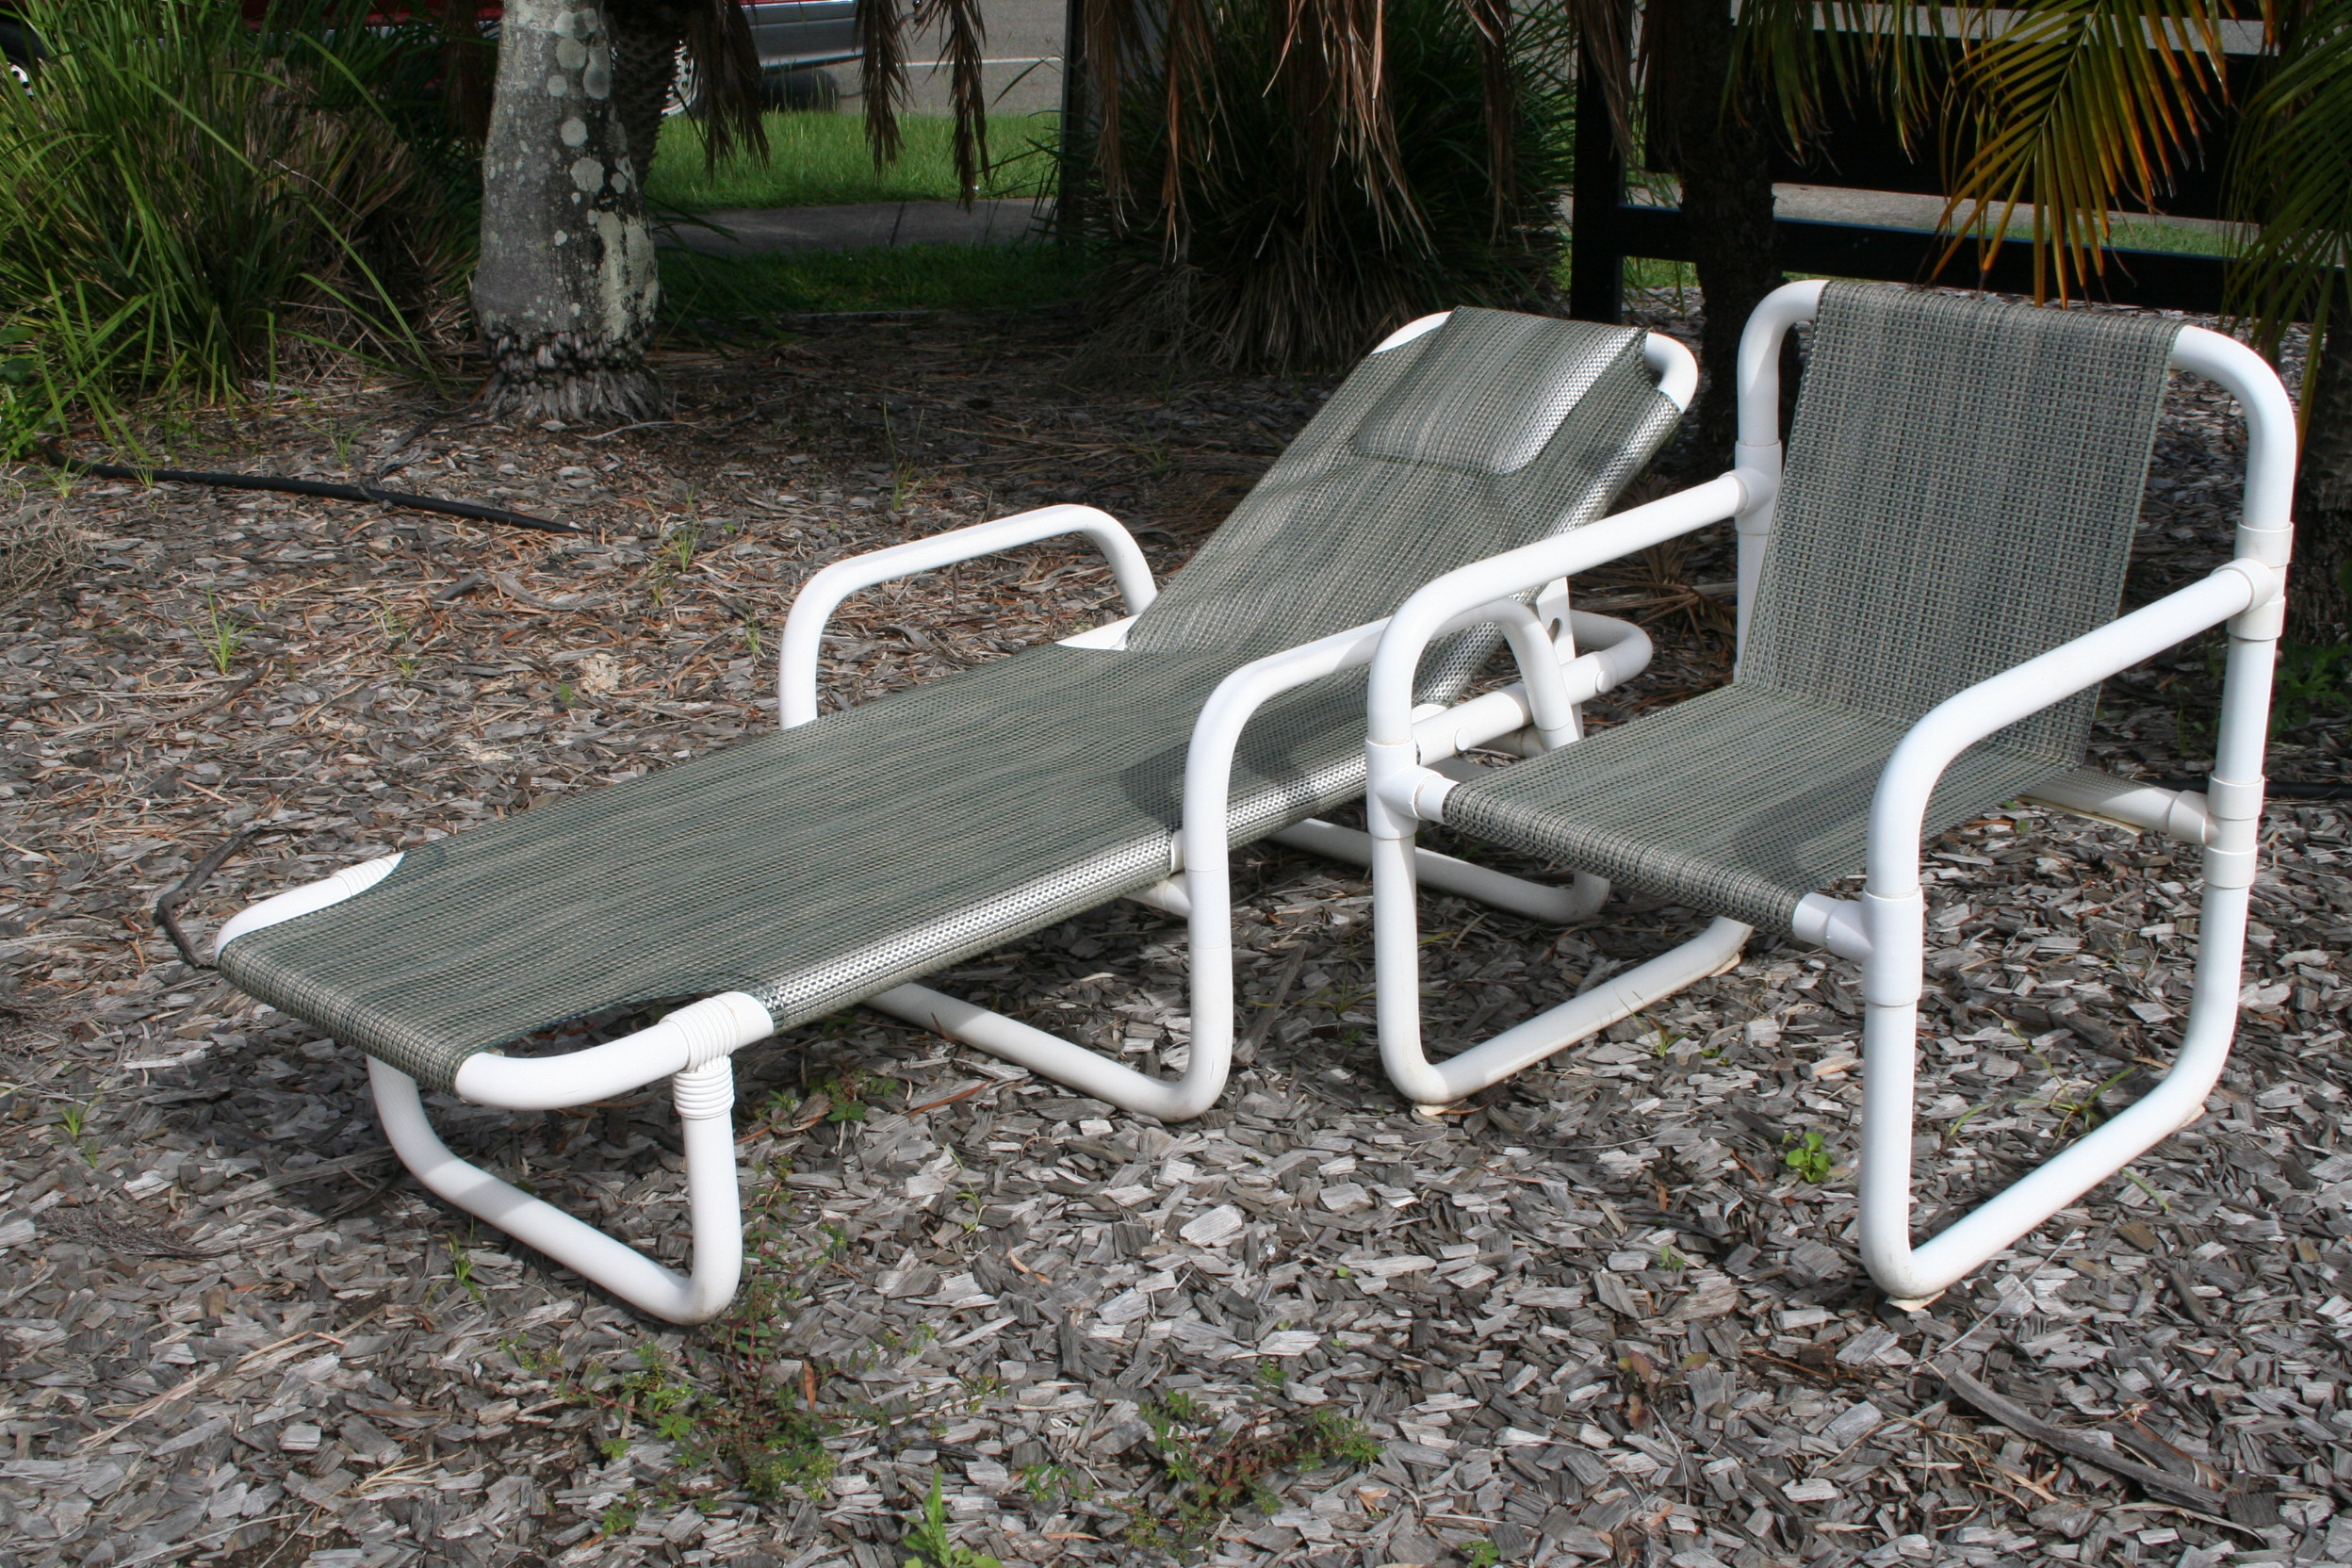 ... impressive on pvc patio furniture pvc pipe patio furniture to make BIZCARW